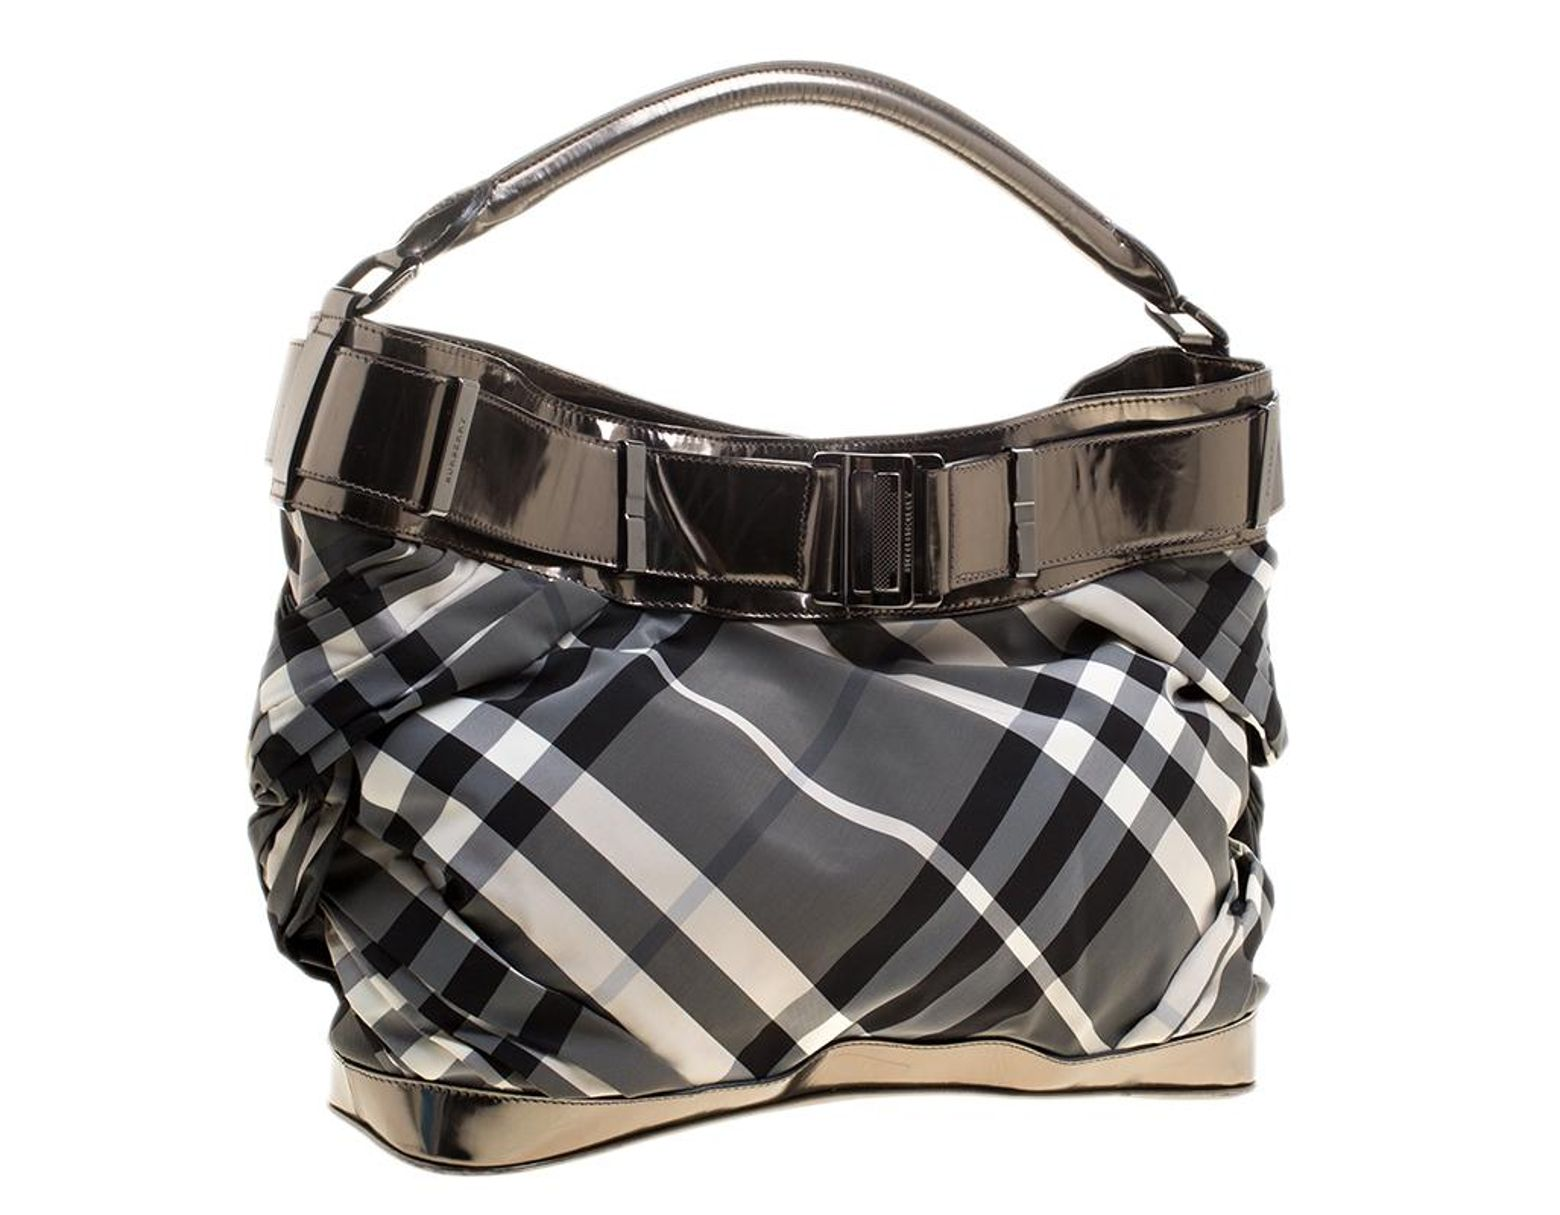 27be71bf1b85 Lyst - Burberry Metallic Grey Beat Check Nylon And Leather Shoulder ...